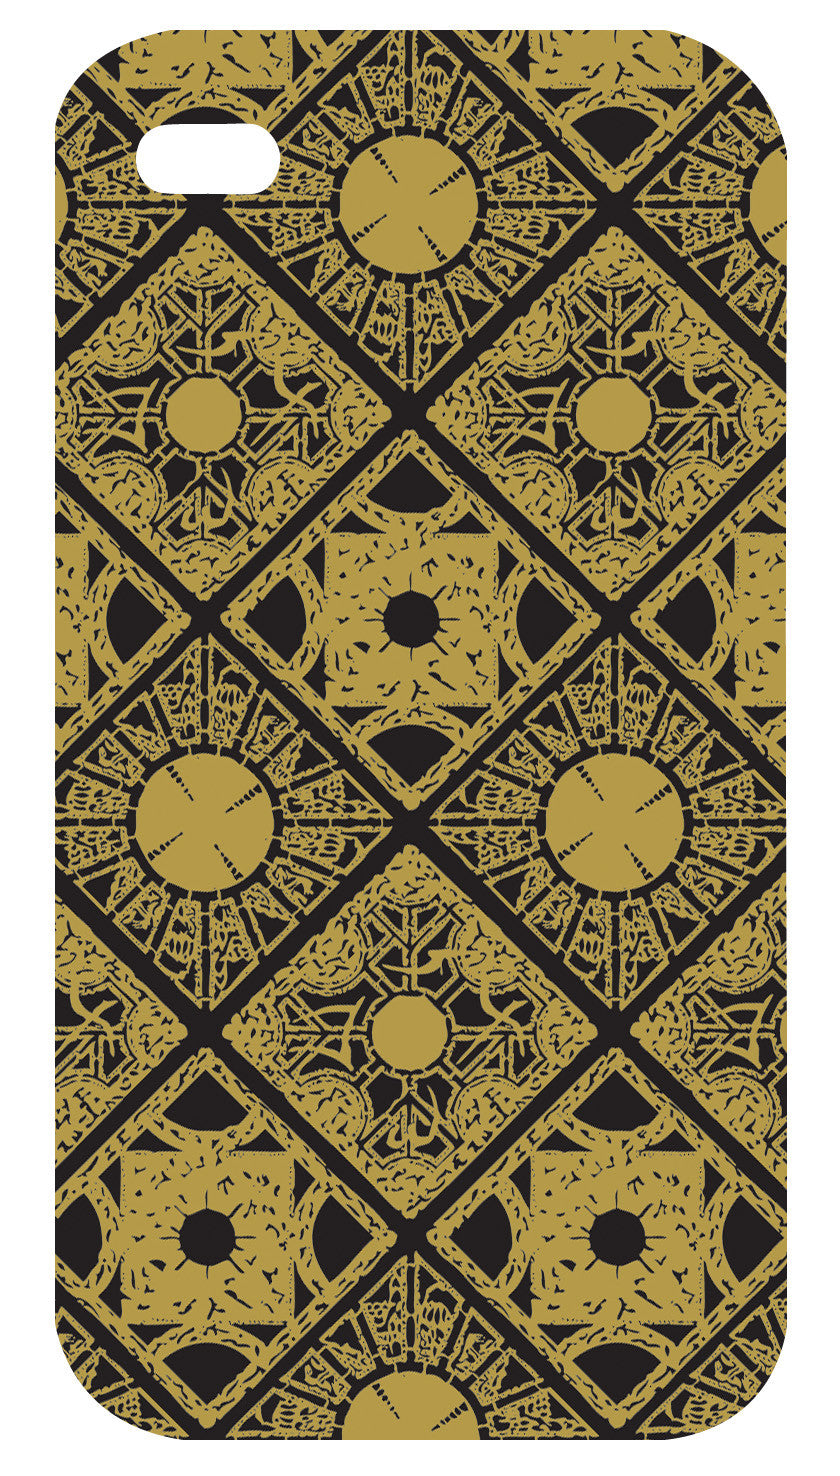 Hellraiser Lament Configuration iPhone 4/4S Case